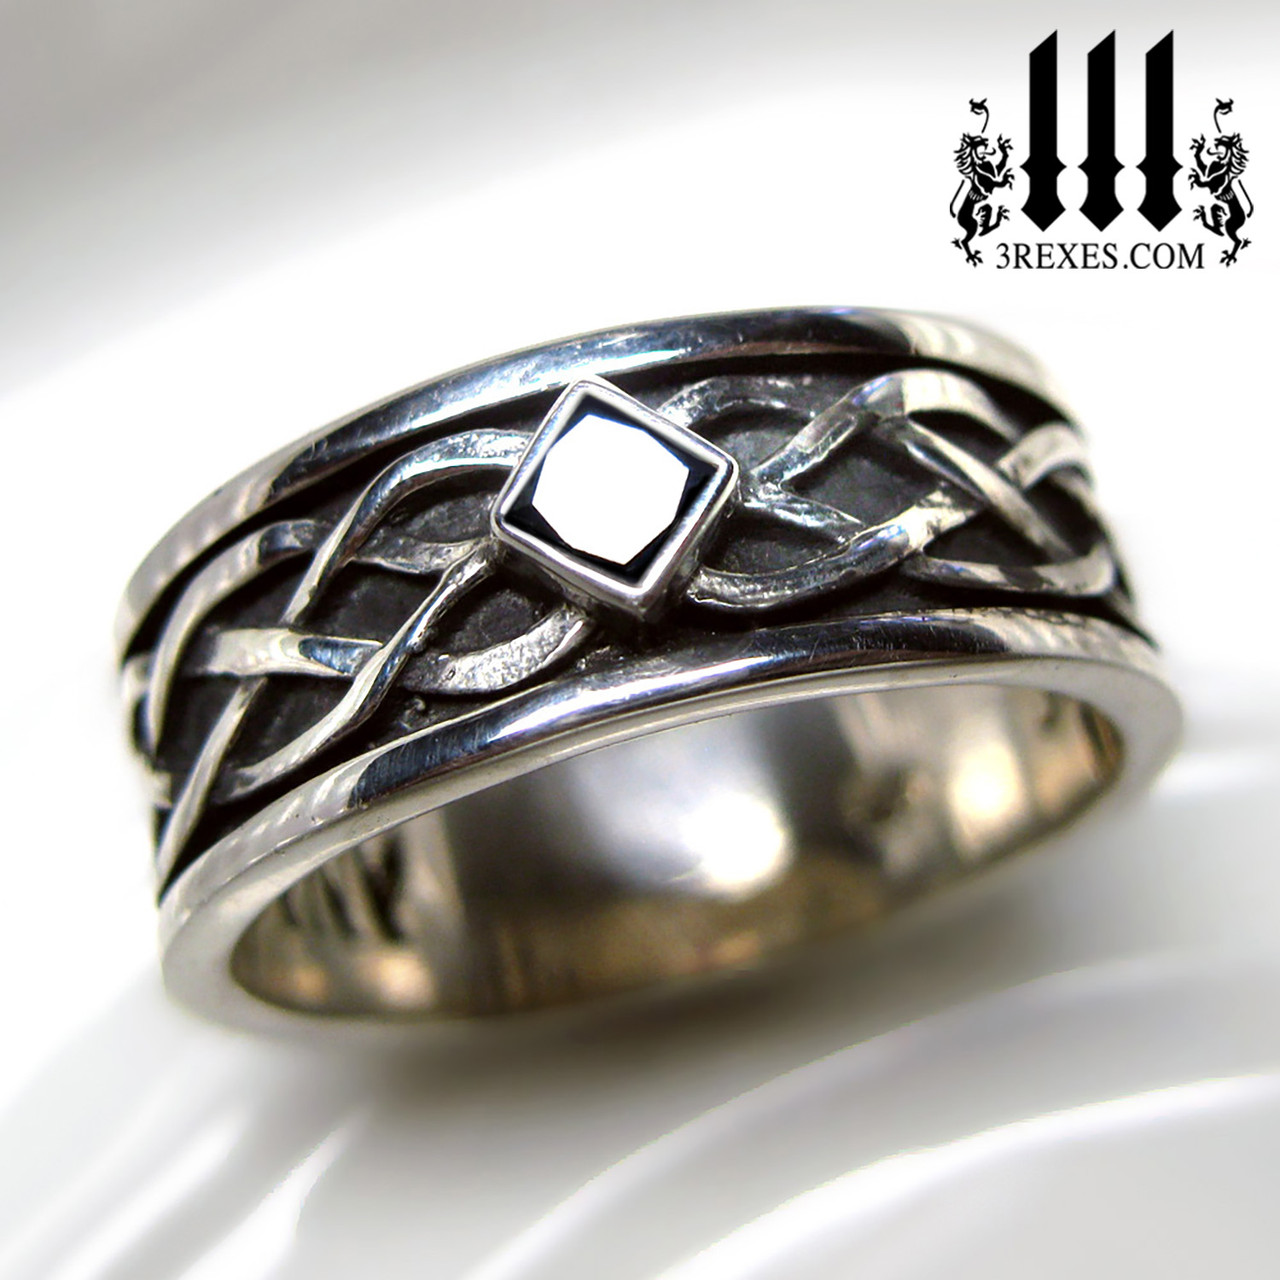 New Silver Irish Celtic Knot Work Ring Celtic Jewellery Wedding Band Gift Boxed